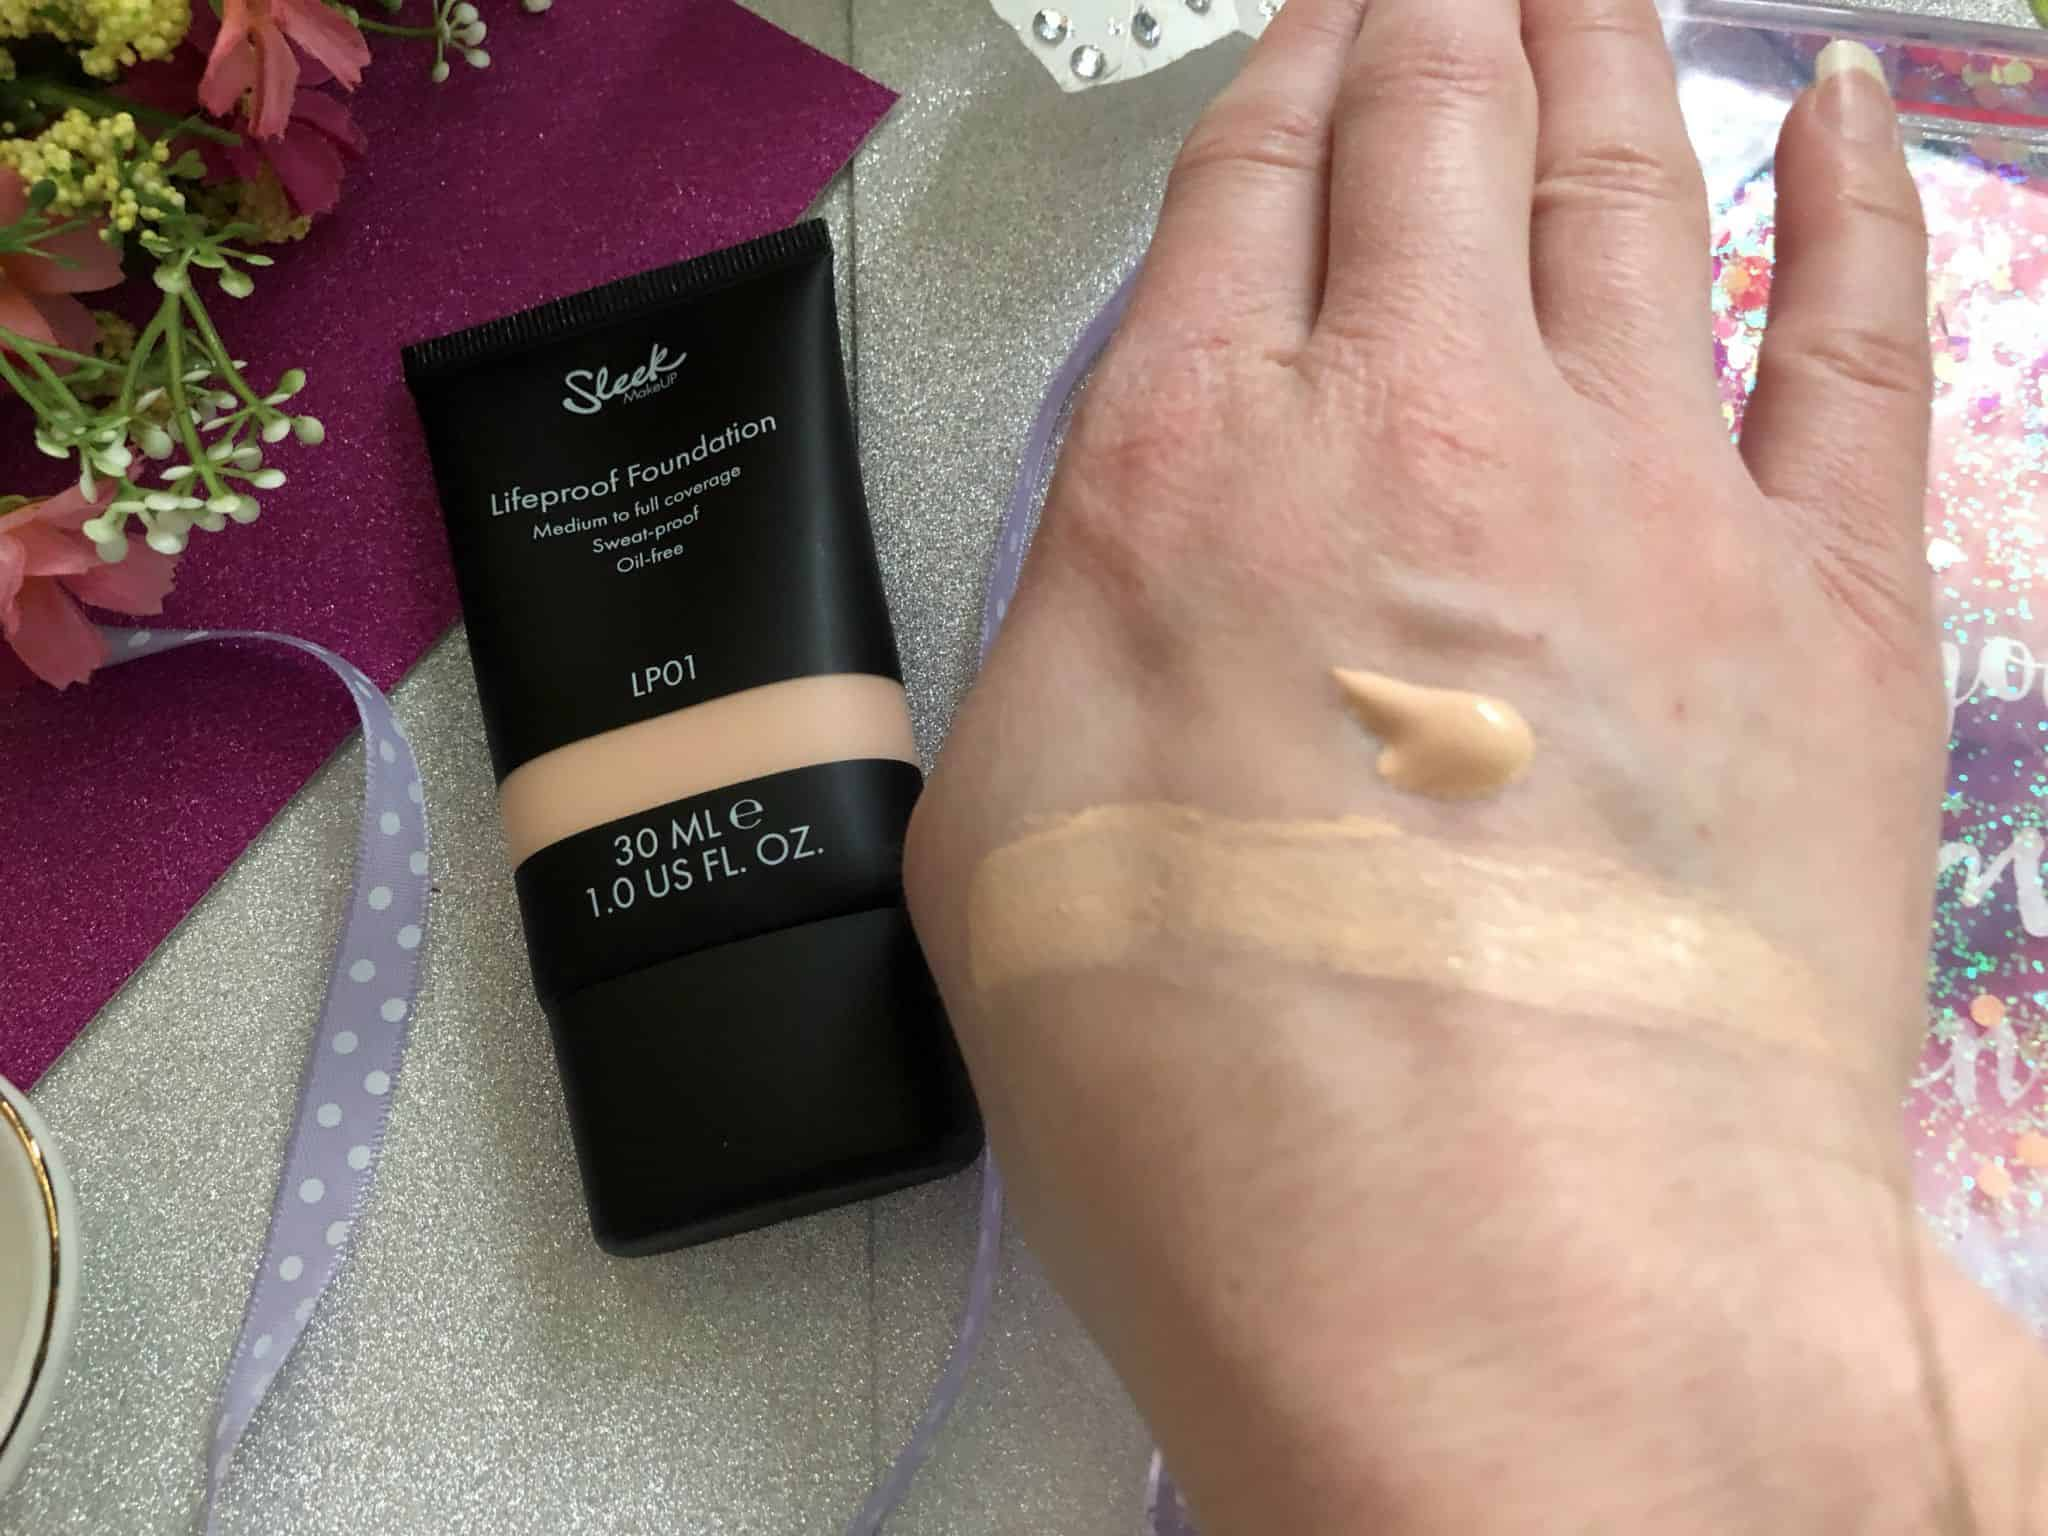 sleek lifeproof foundation swatch